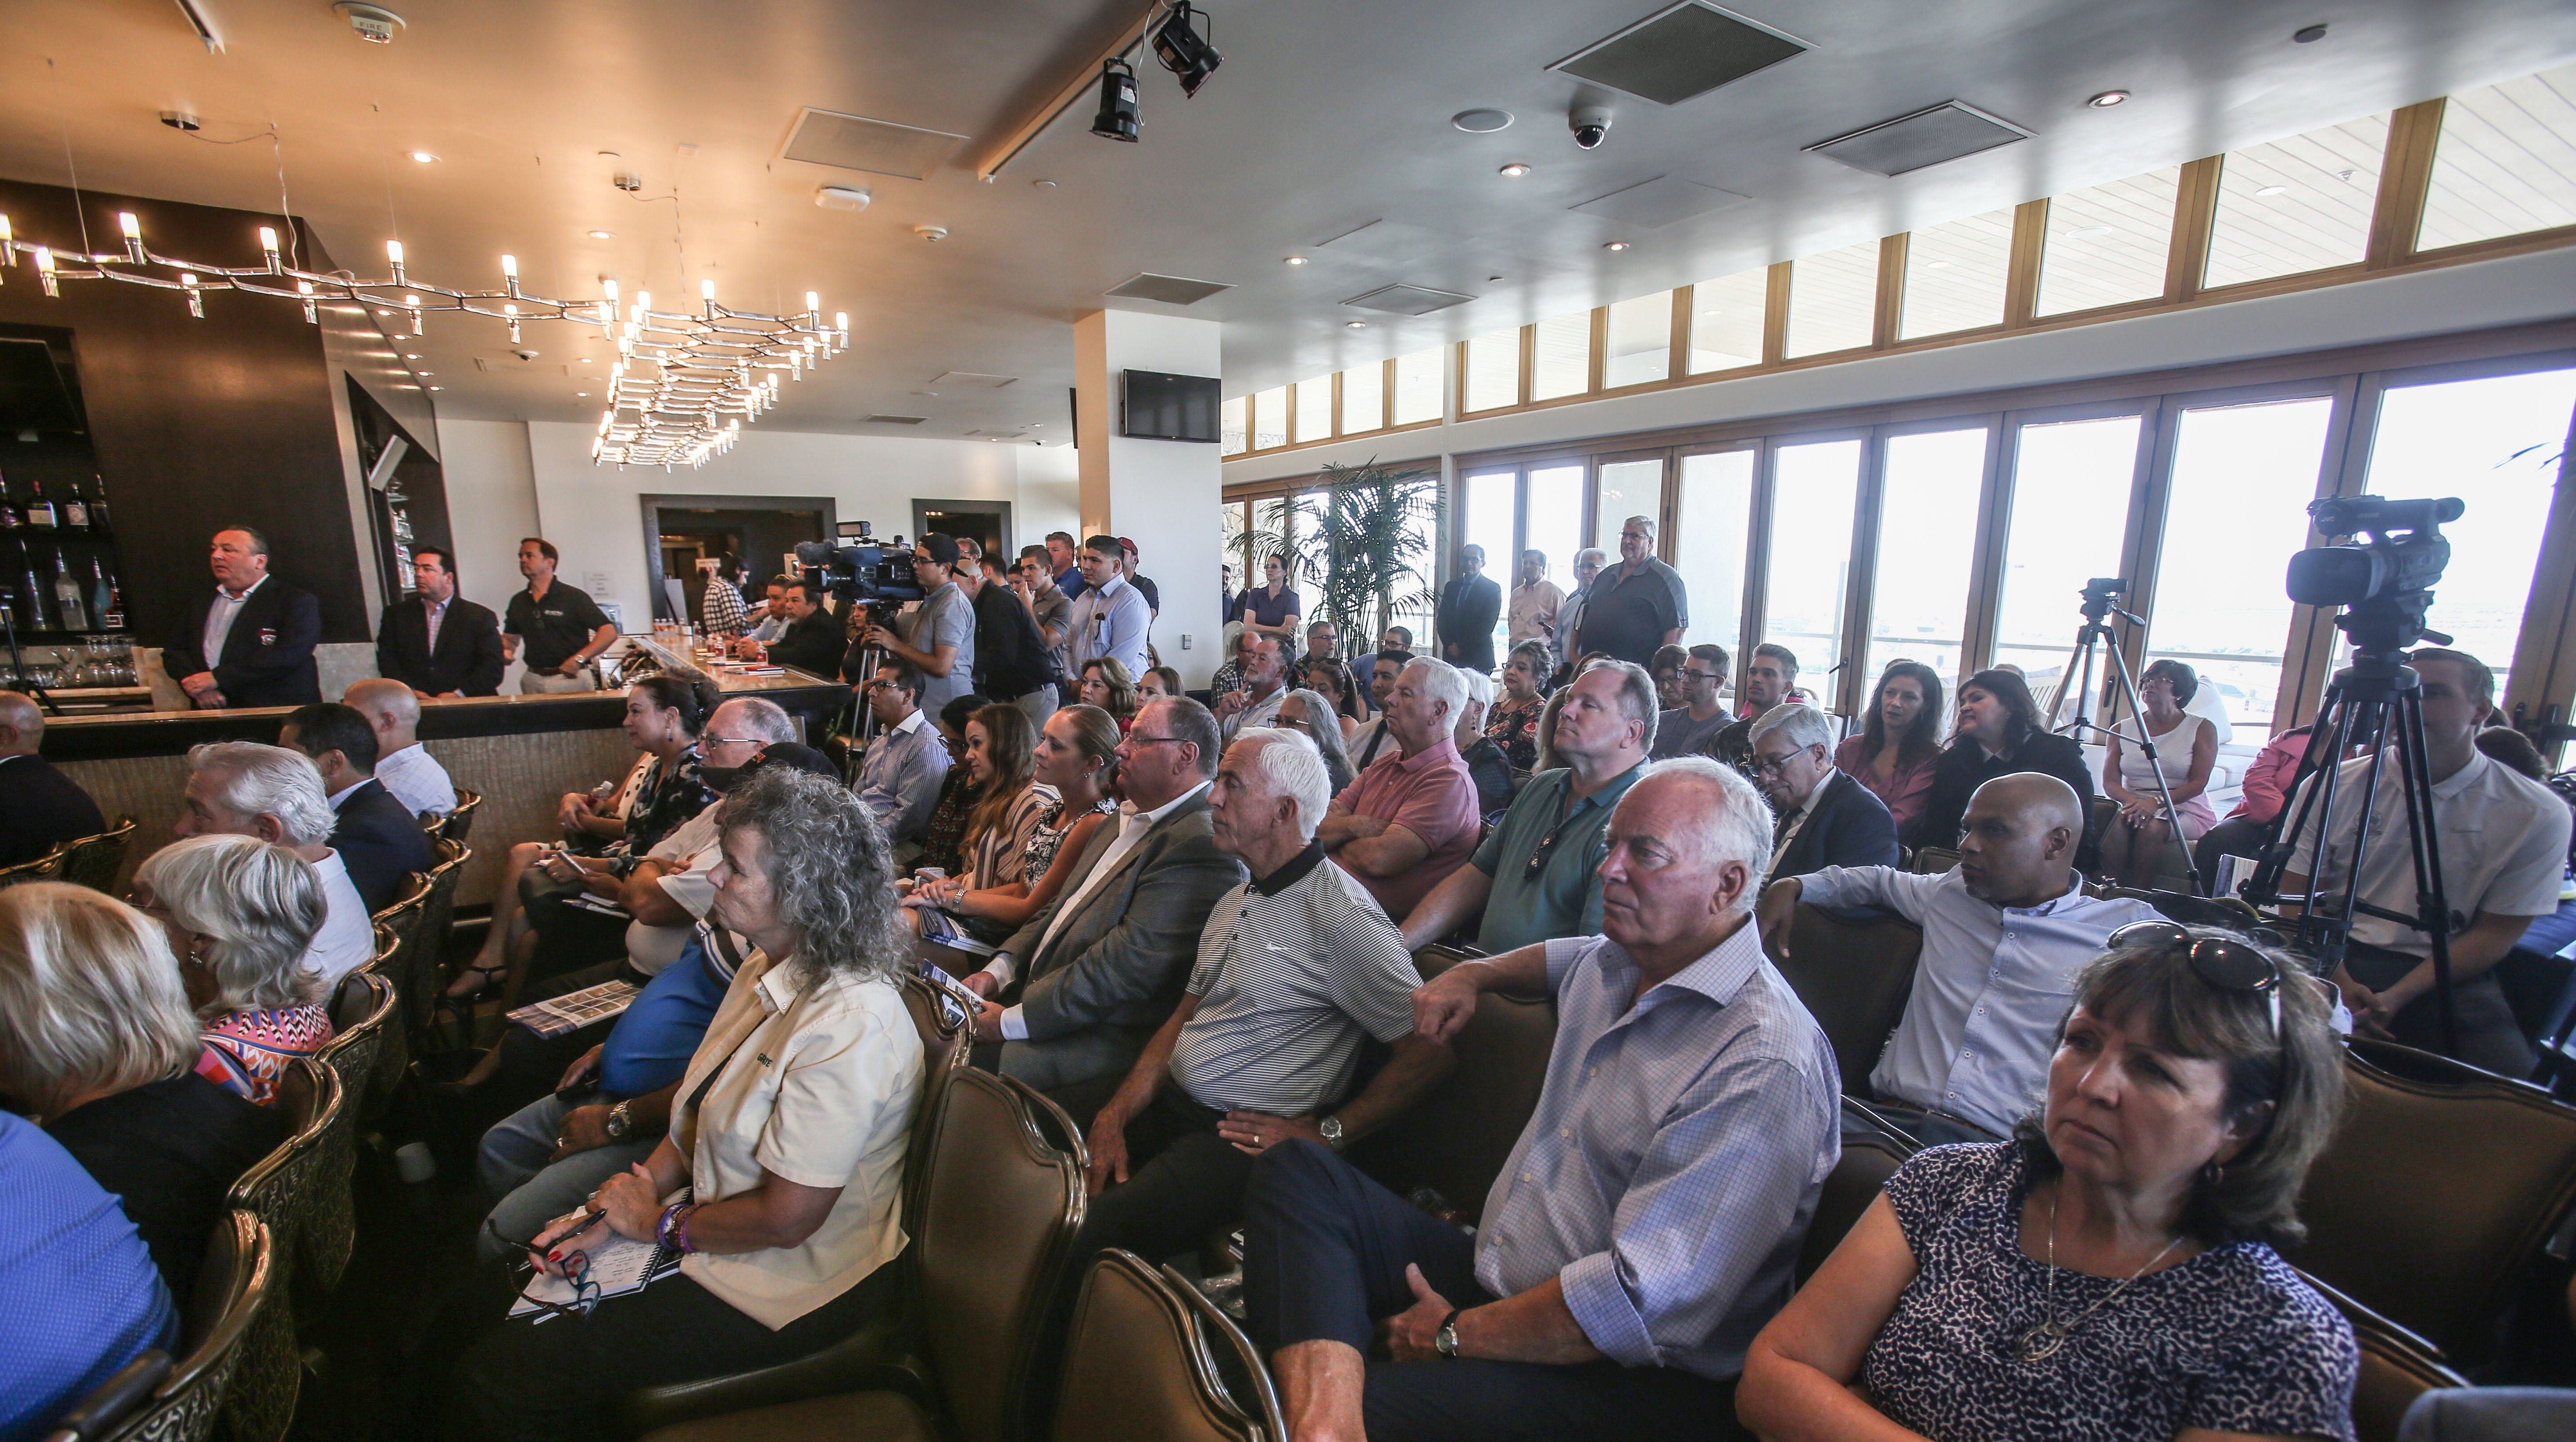 Developer shares details for $300M, 12,000-seat air-conditioned stadium in Thousand Palms